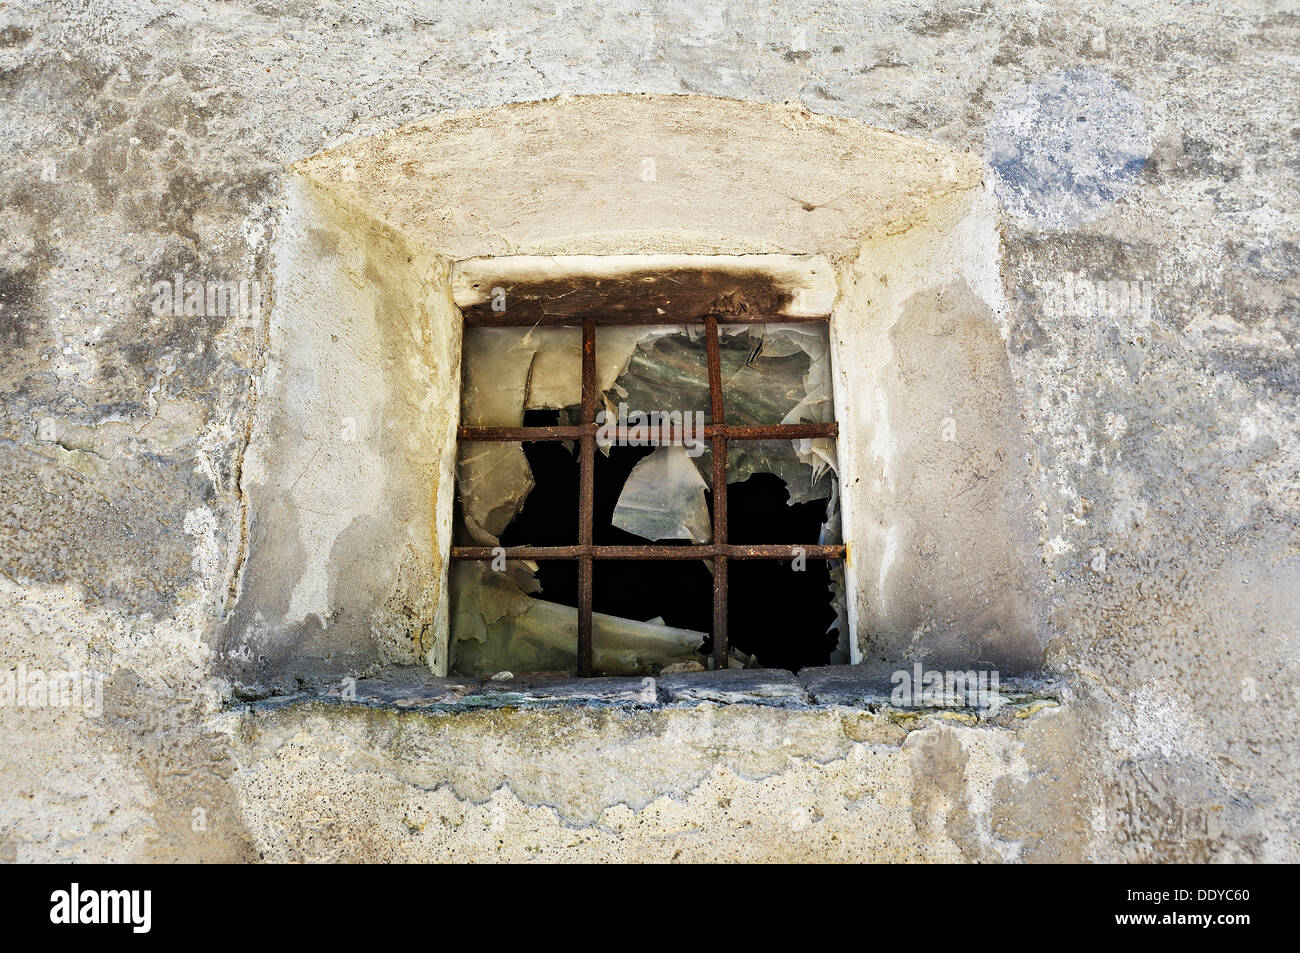 Old broken window with iron bars, Schaeftlarn Abbey, Schaeftlarn, Bavaria - Stock Image